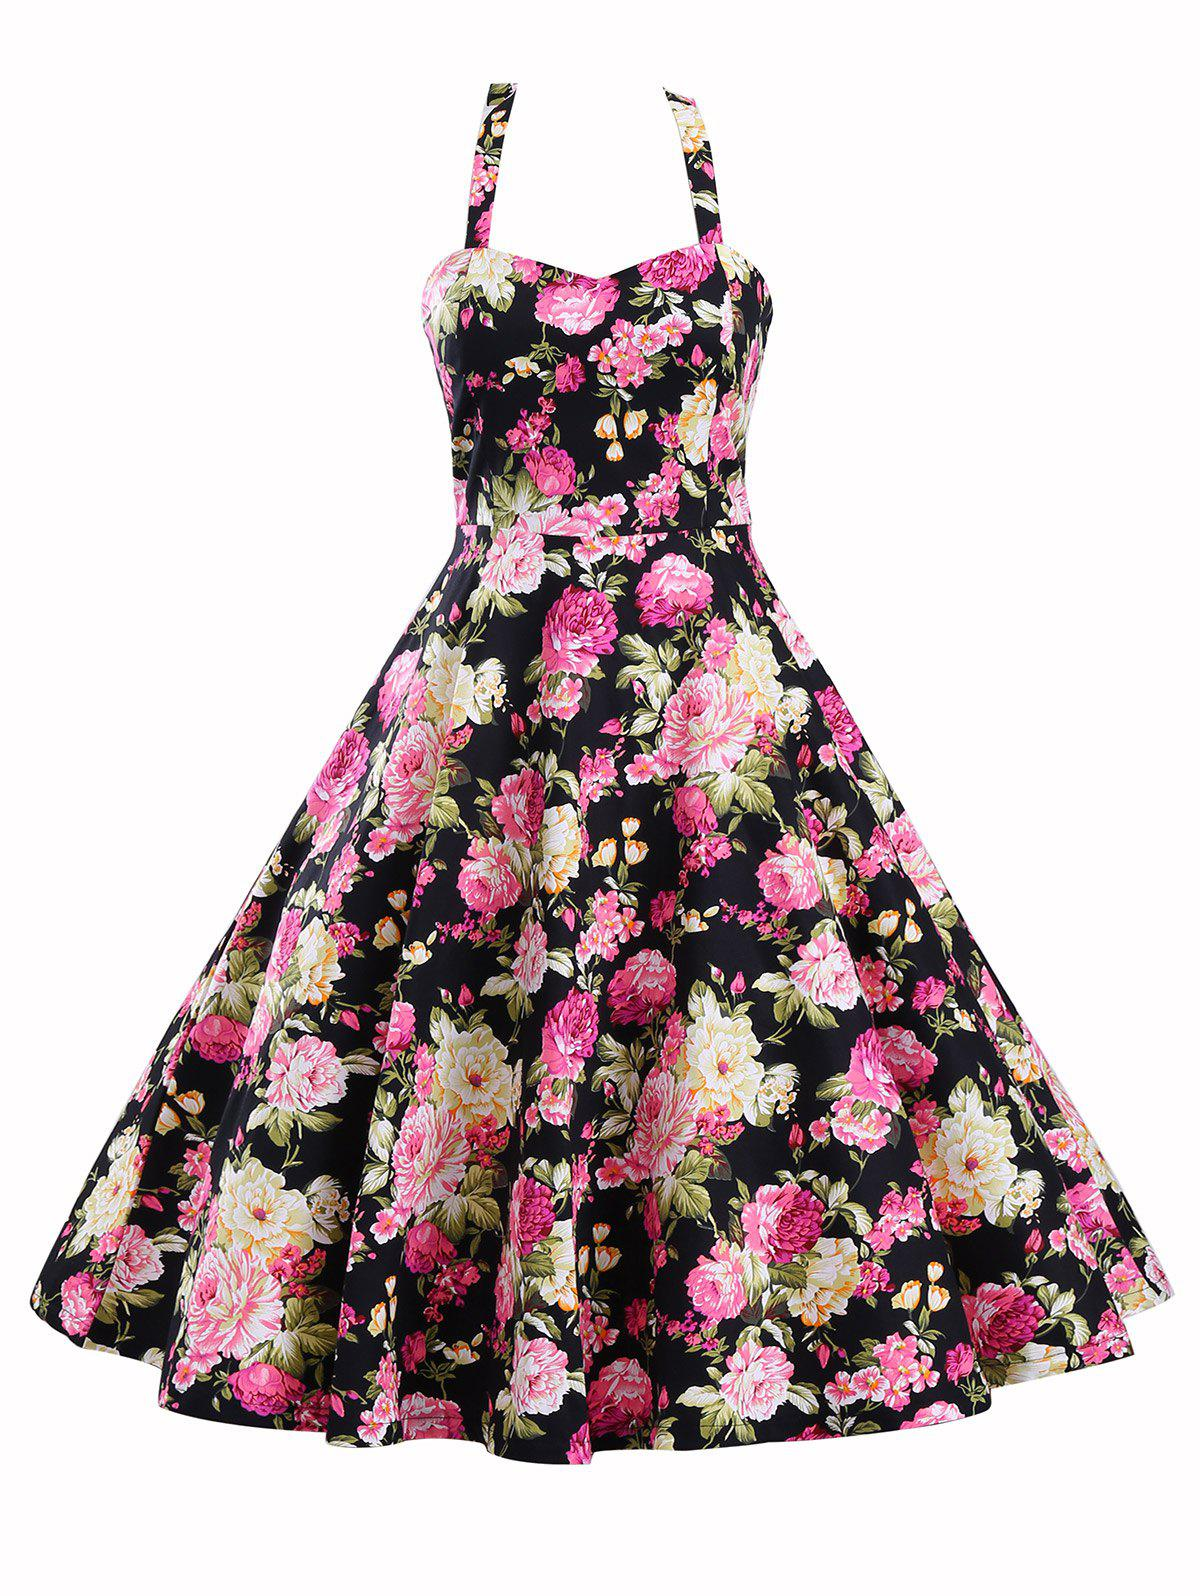 Floral Print High Waist Halter Vintage Flowy DressWOMEN<br><br>Size: XL; Color: COLORMIX; Style: Vintage; Material: Polyester; Silhouette: A-Line; Dress Type: Fit and Flare Dress; Dresses Length: Knee-Length; Neckline: Halter; Sleeve Length: Sleeveless; Pattern Type: Floral,Print; With Belt: No; Season: Fall,Spring,Summer,Winter; Weight: 0.4400kg; Package Contents: 1 x Dress;